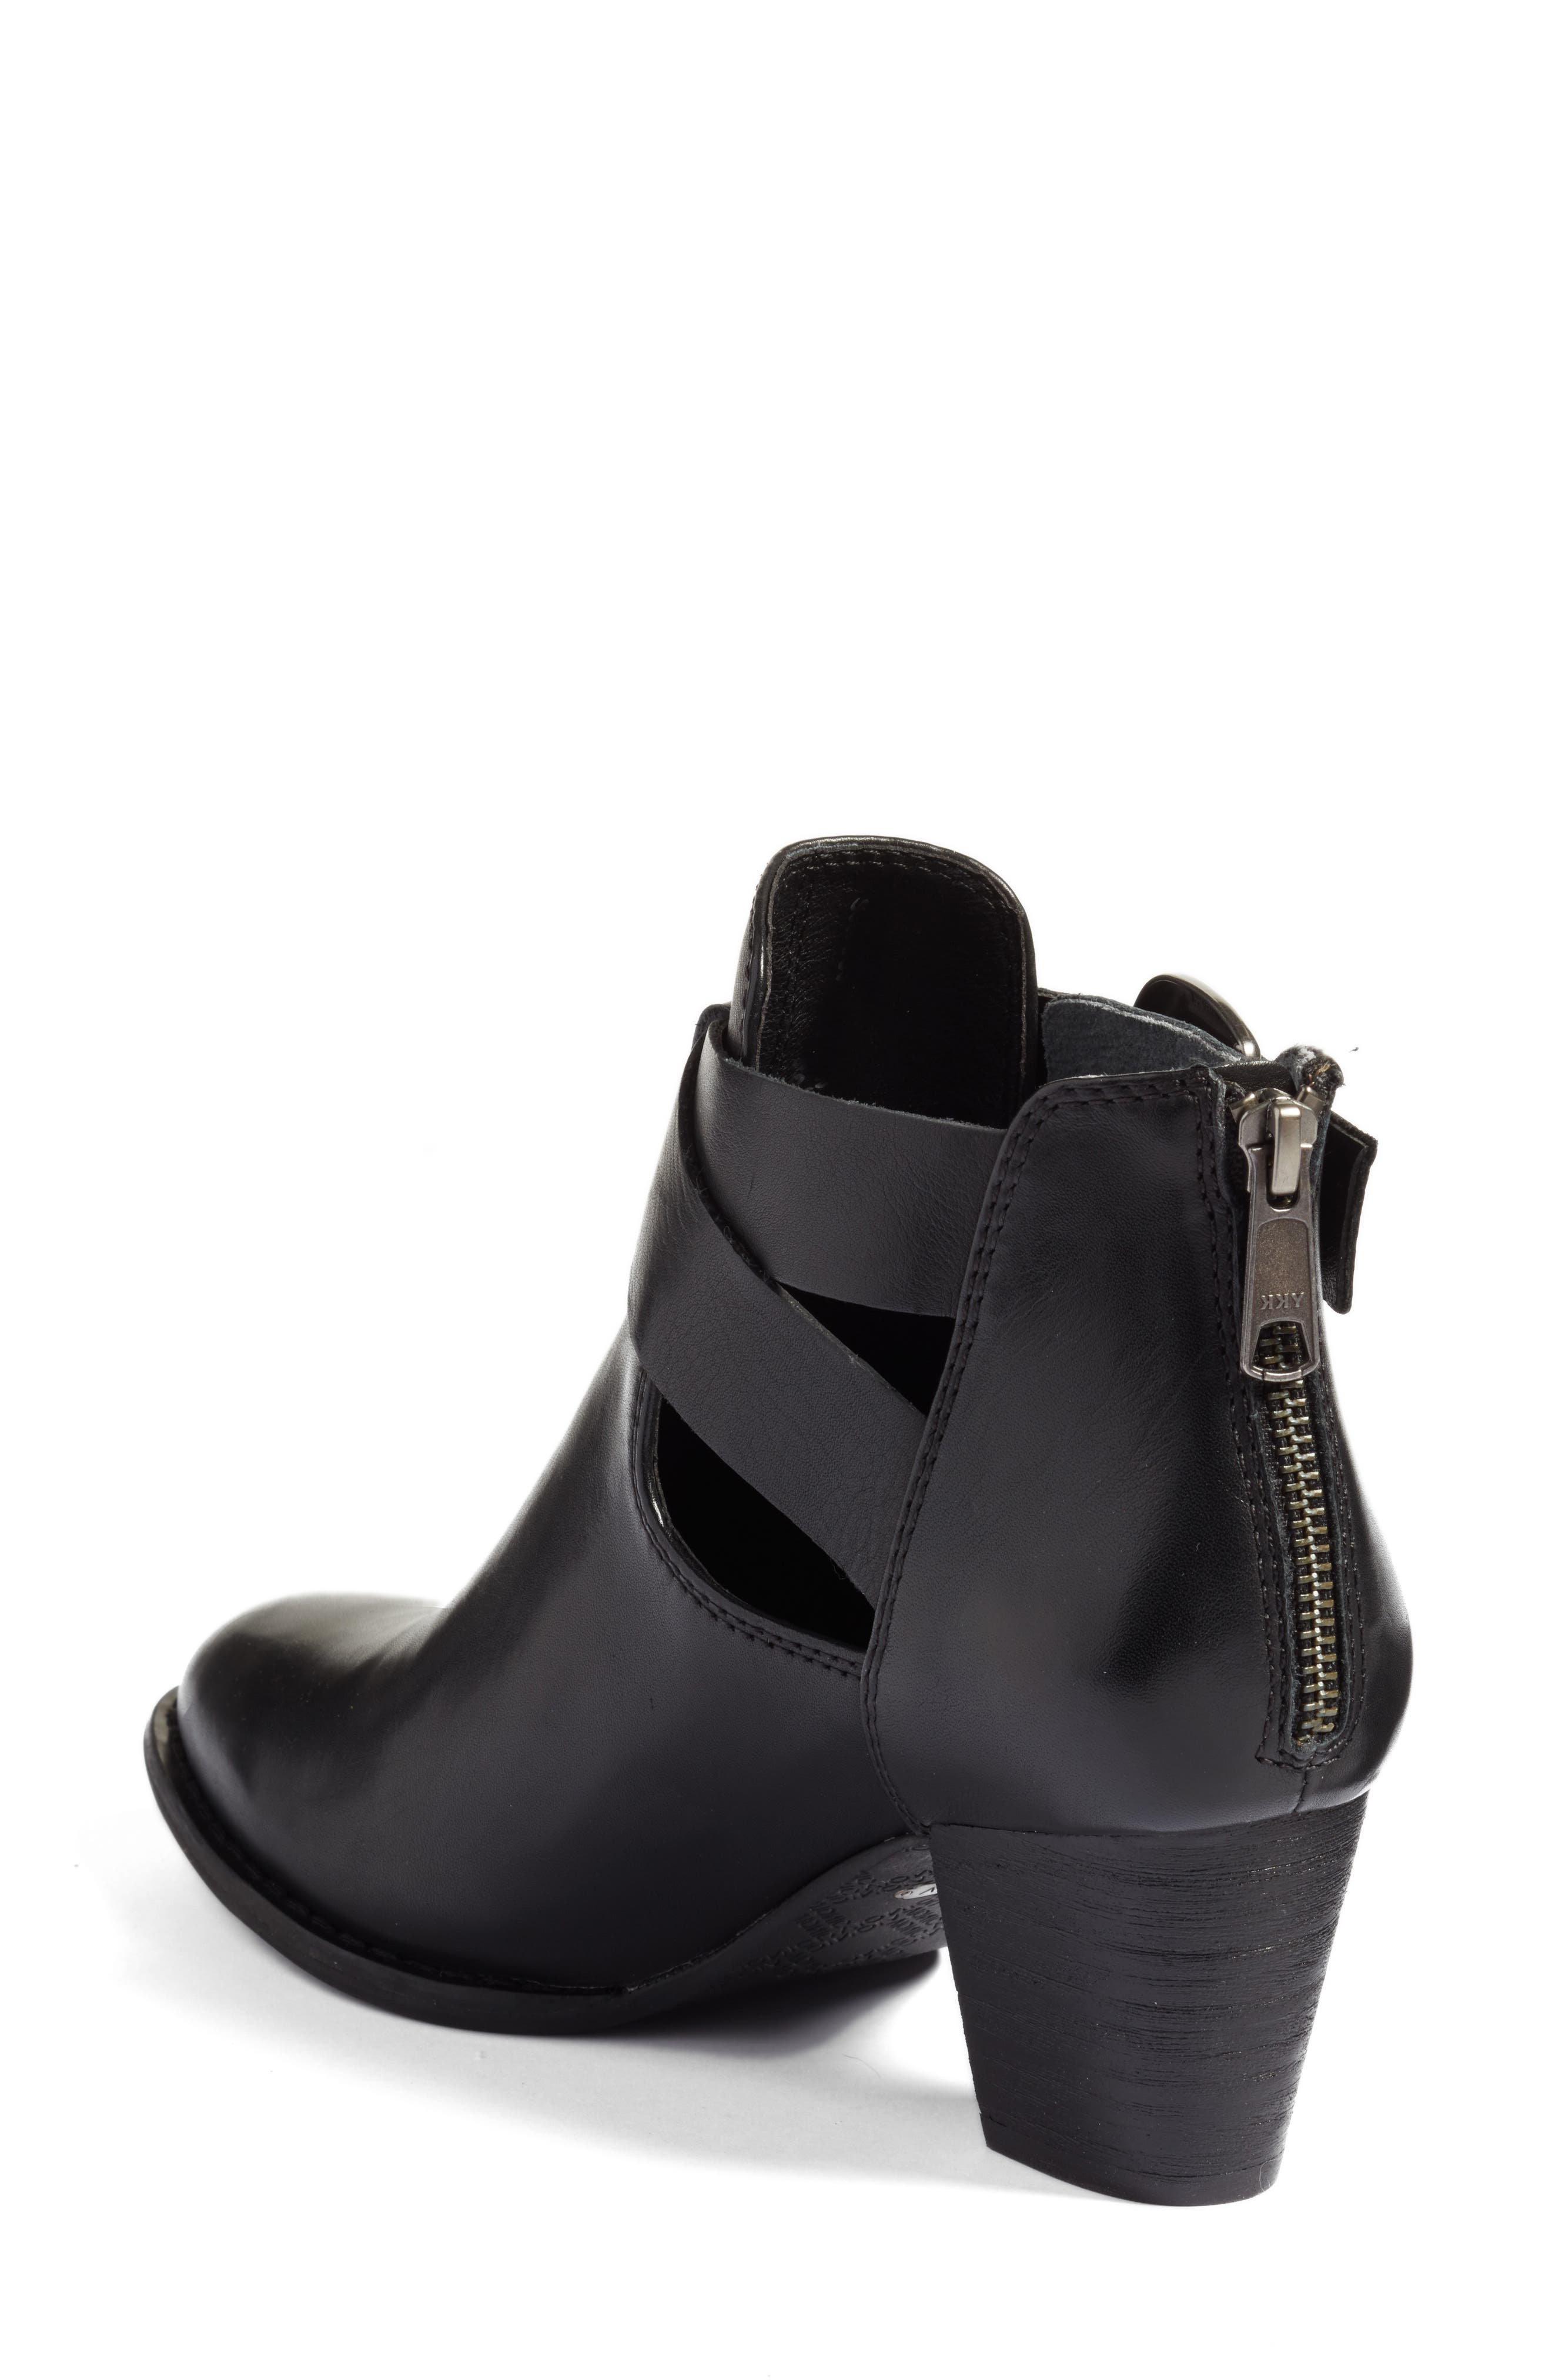 Rory Buckle Strap Bootie,                             Alternate thumbnail 2, color,                             001